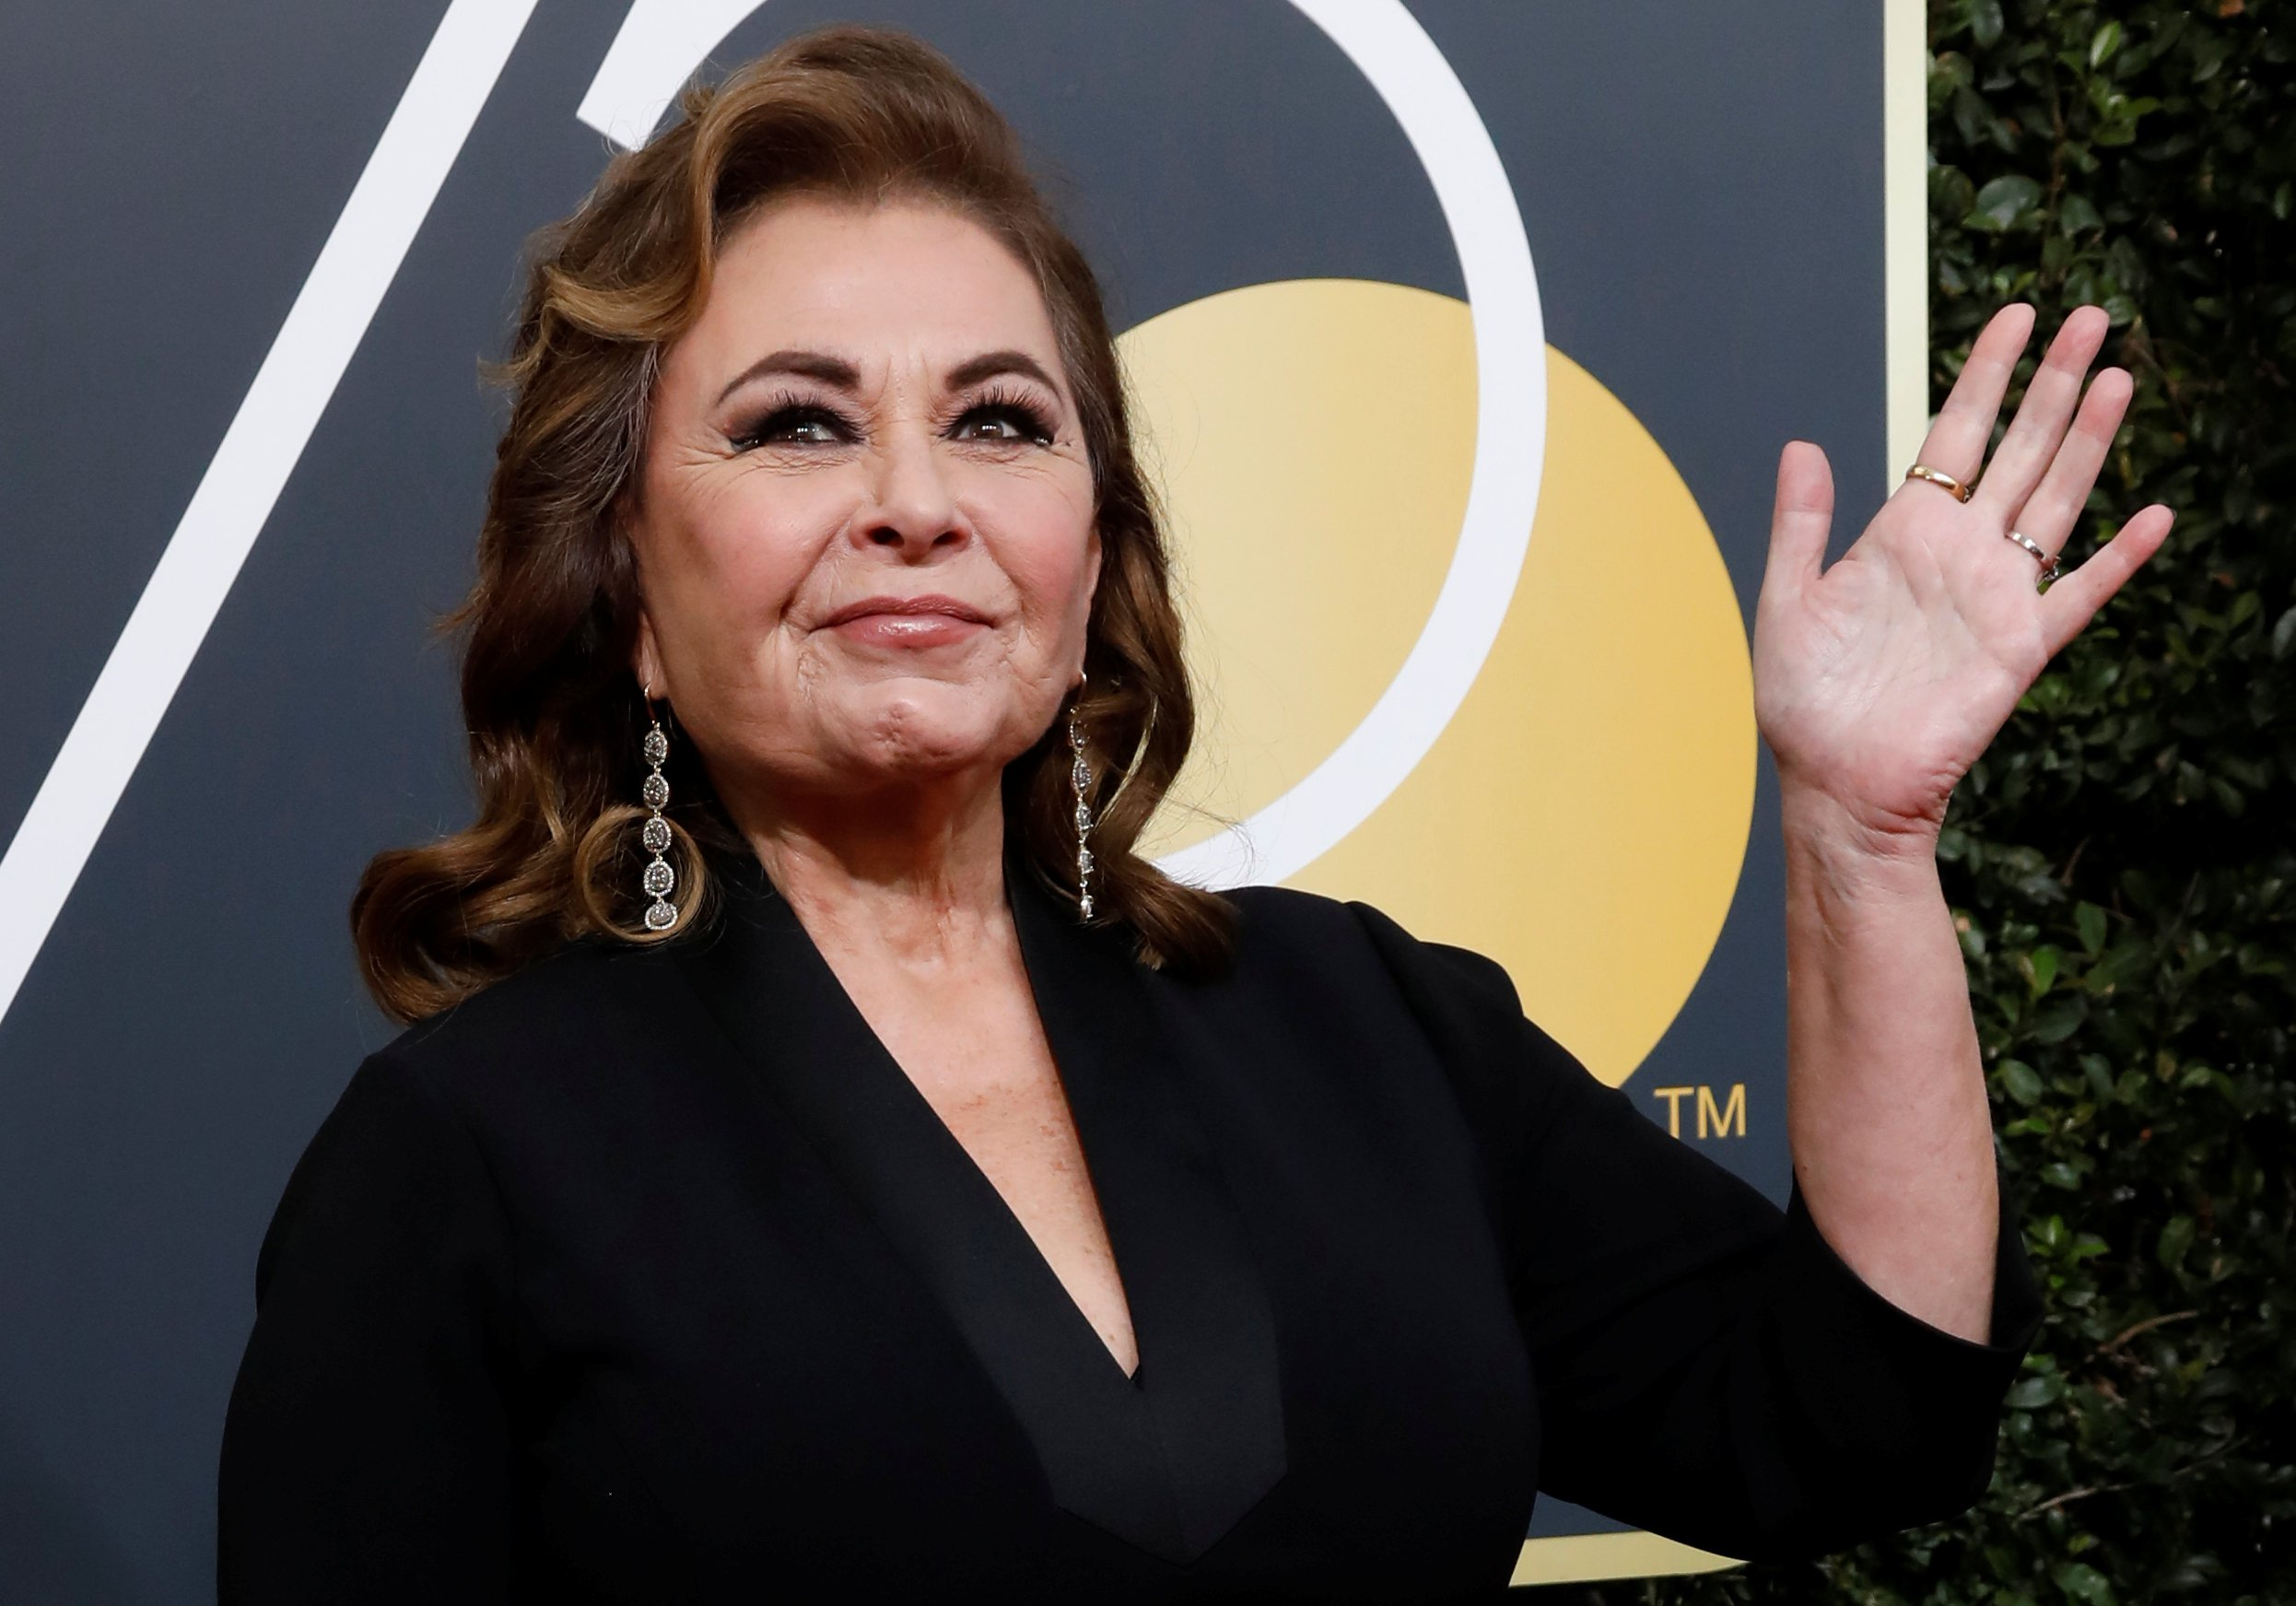 Roseanne Barr moving to Israel ahead of spin-off The Conners airing following racist tweet